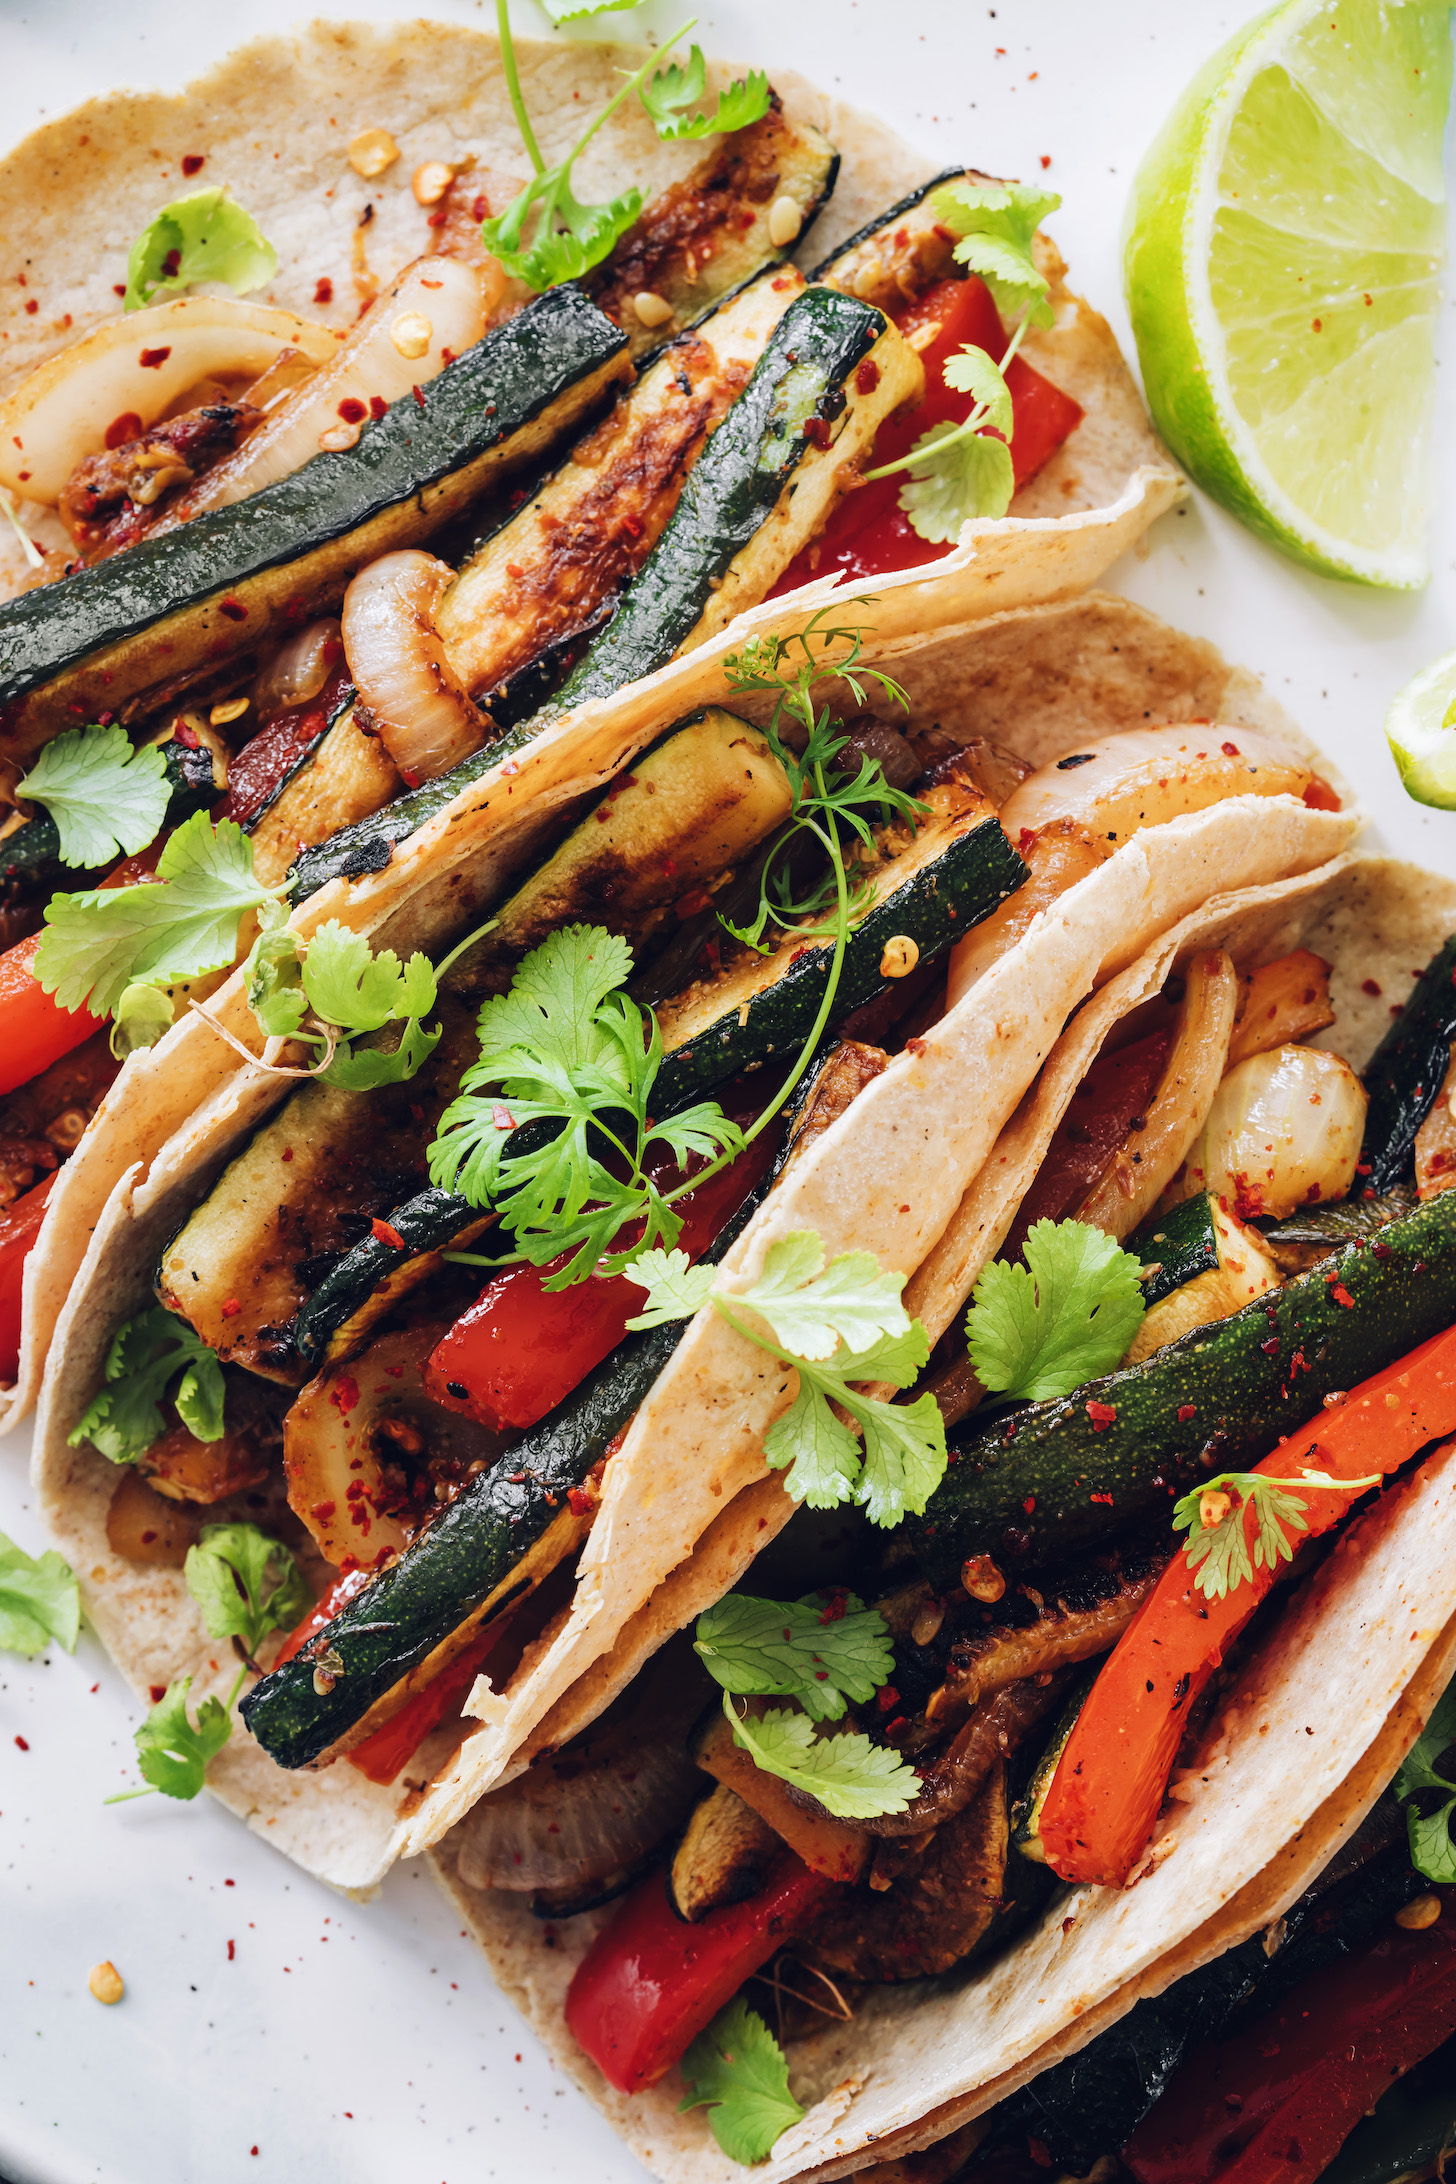 Close up shot of three vegan tacos made with zucchini, bell pepper, and onion